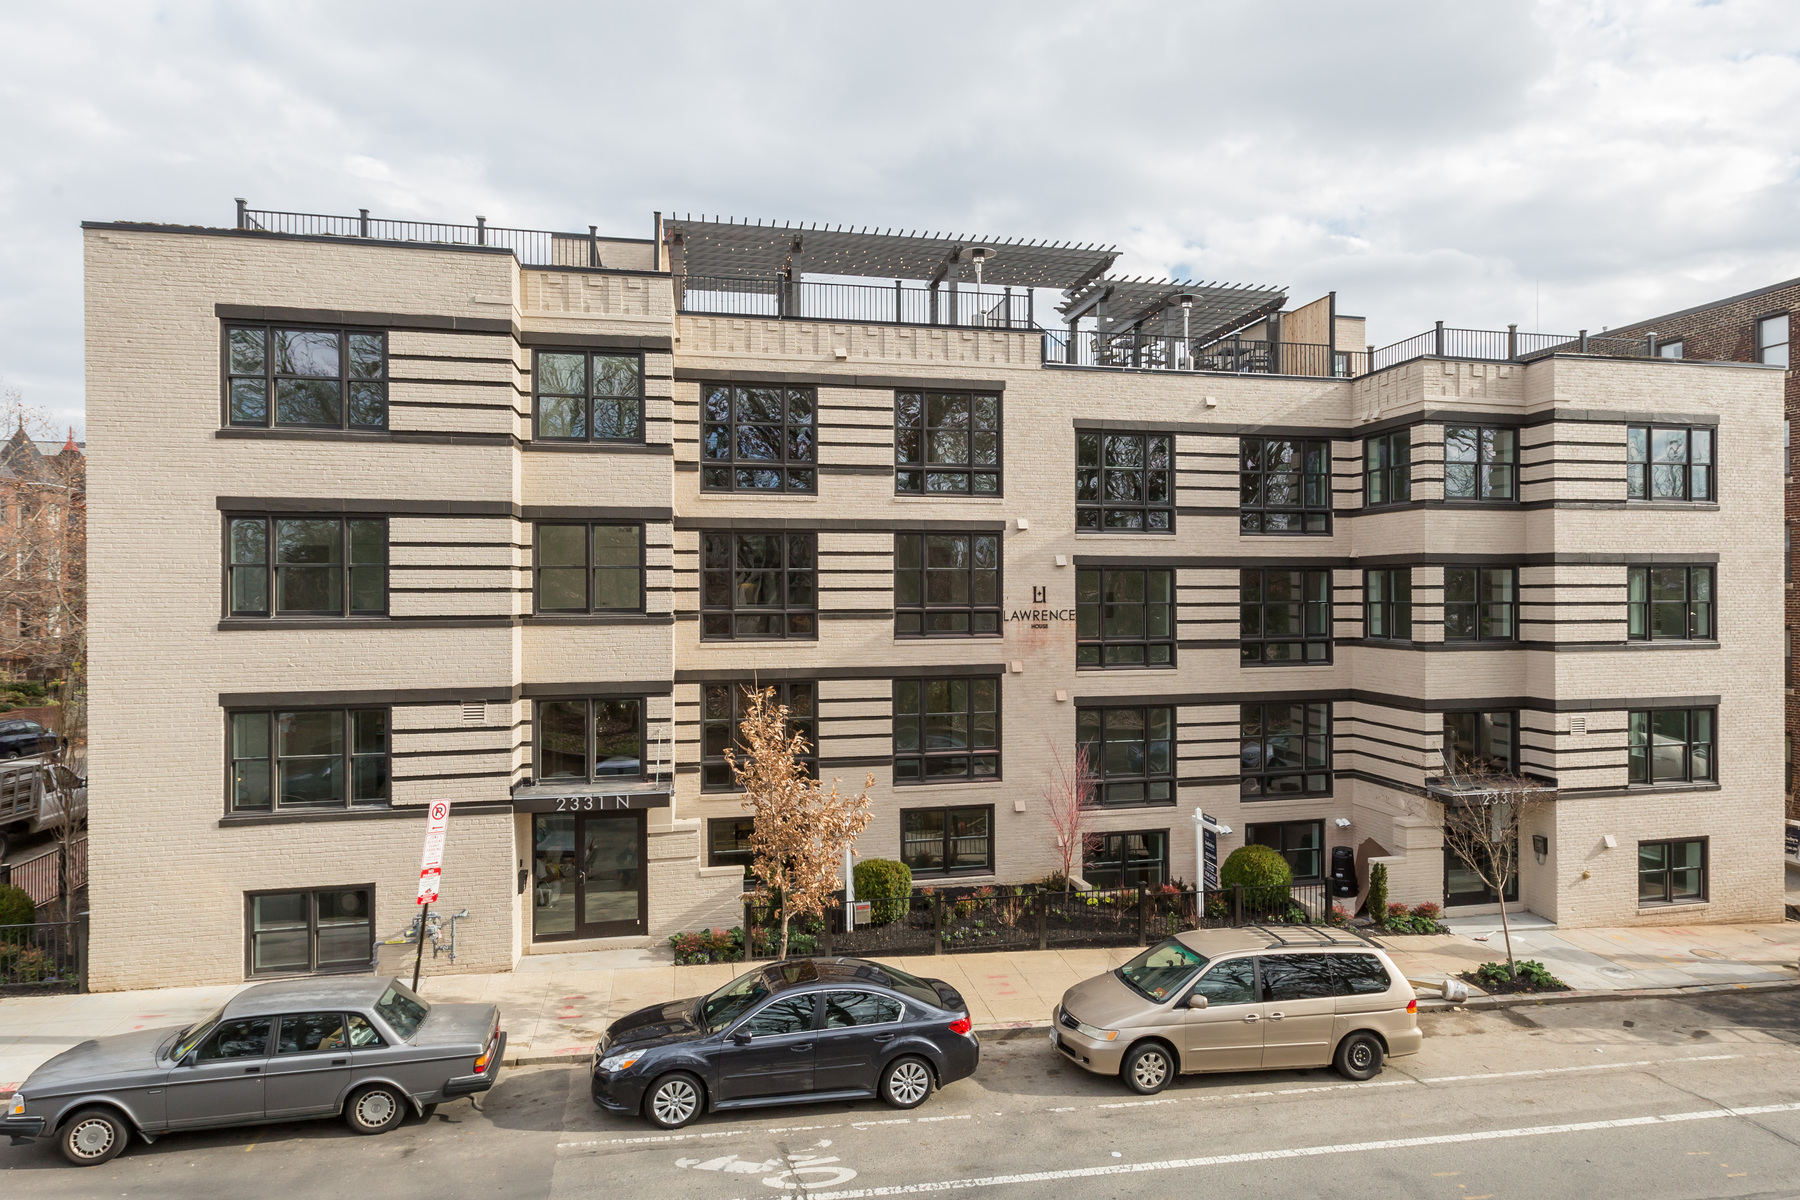 sales property at 2331 15th Street Nw PENTHOUSE, Washington